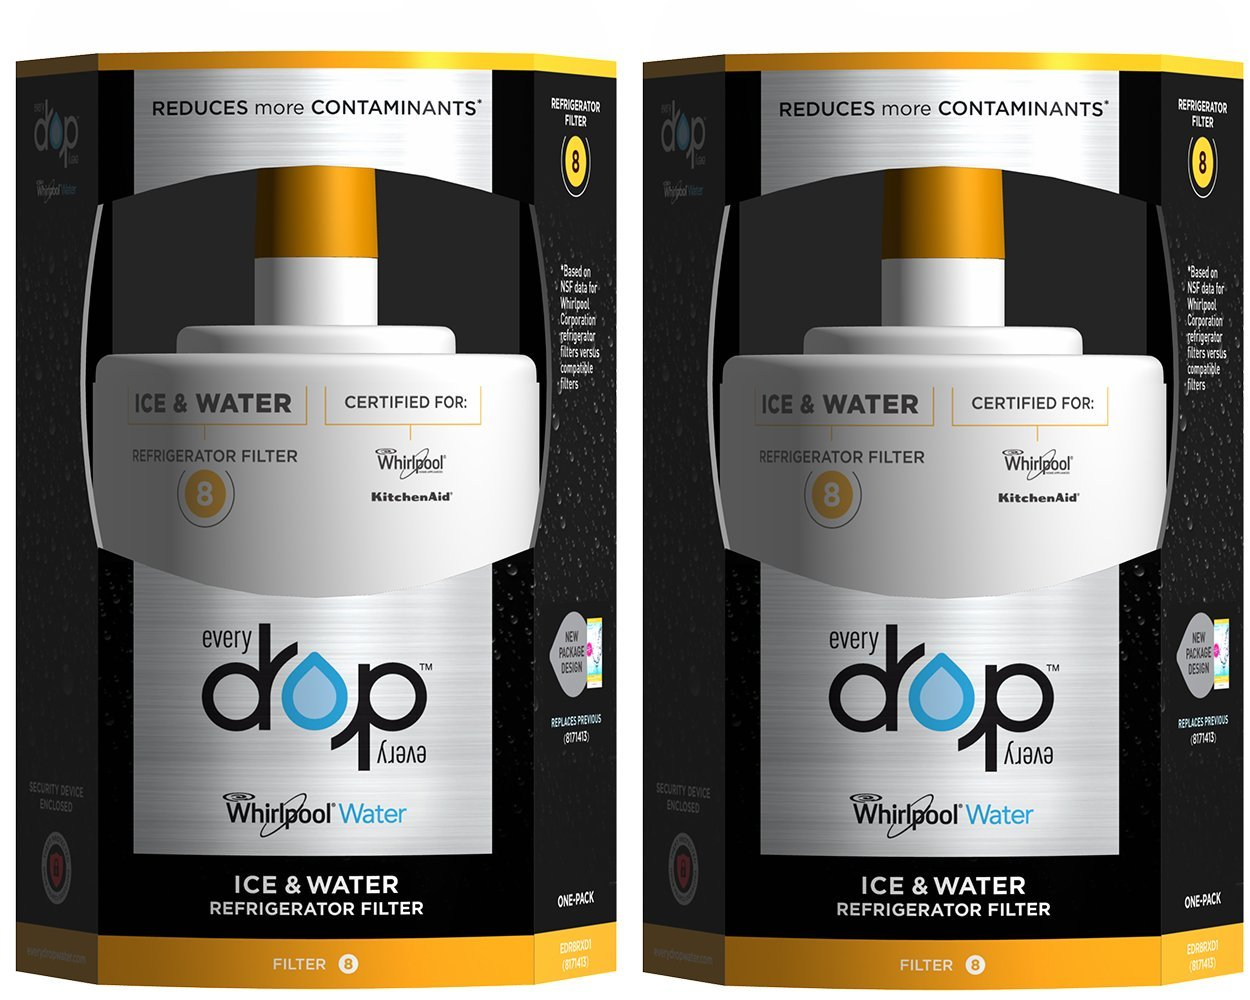 EveryDrop by Whirlpool Refrigerator Water Filter 8 (Pack of 2)